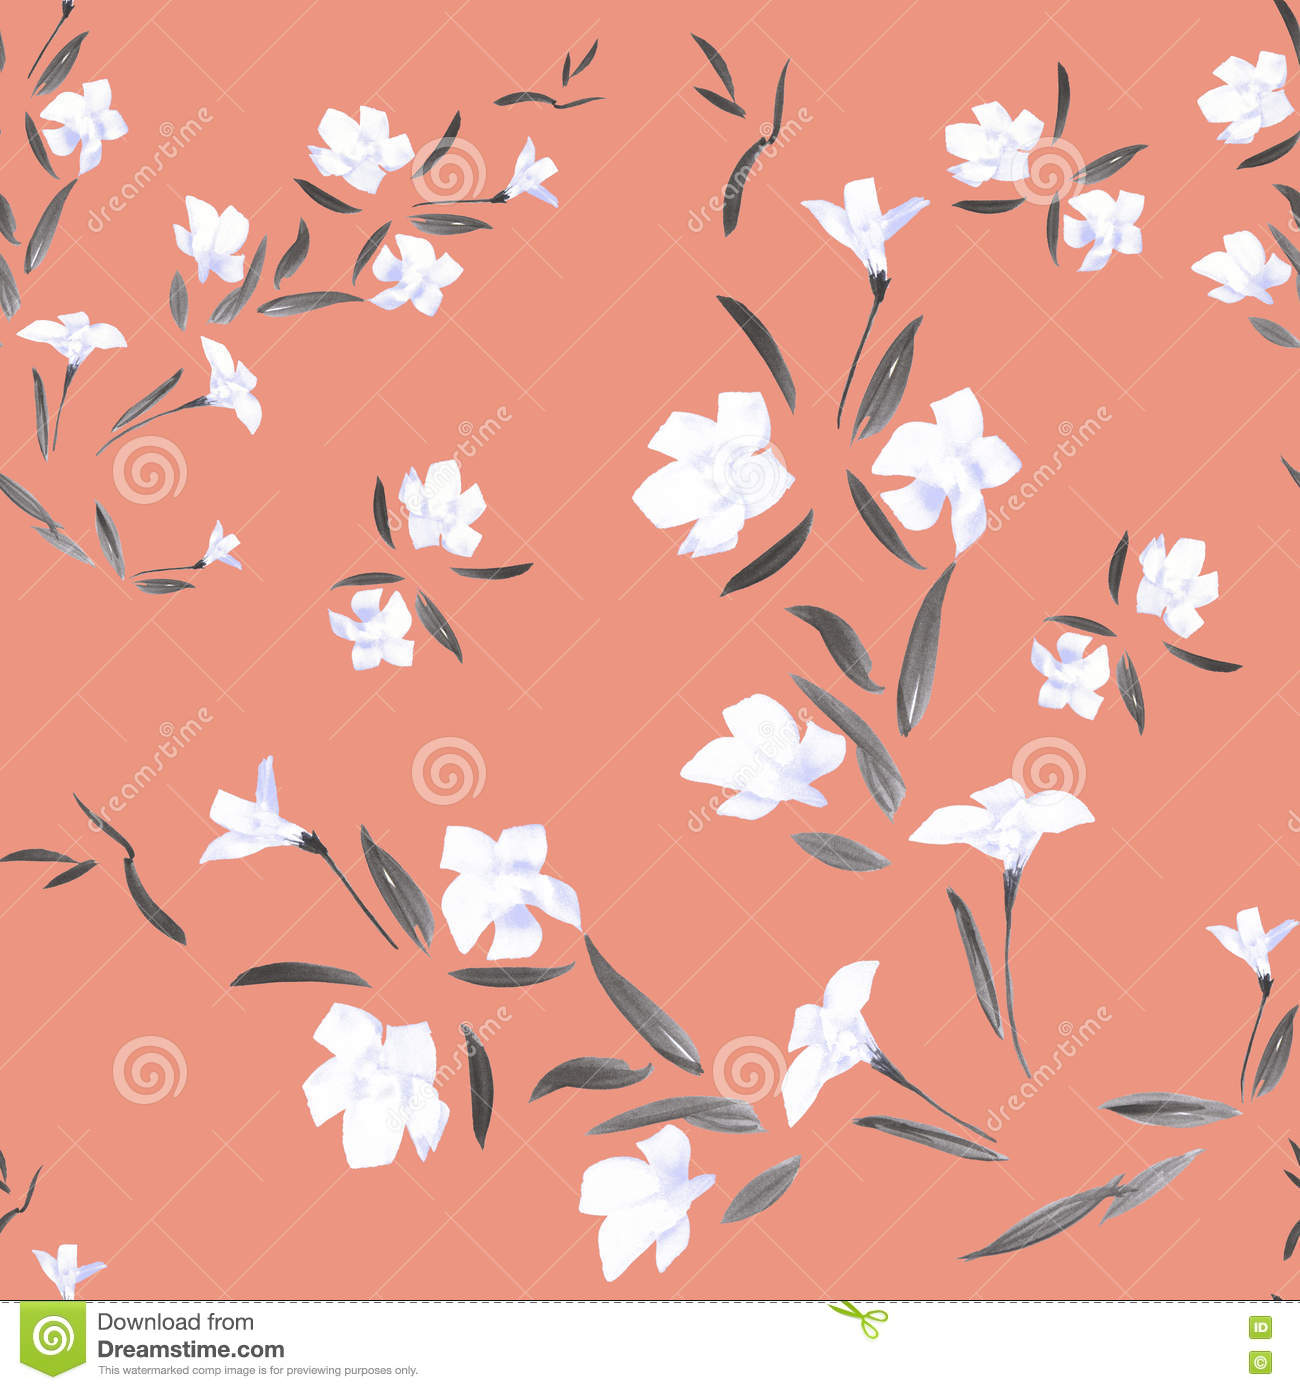 Seamless pattern watercolor white flowers on a coral background download comp mightylinksfo